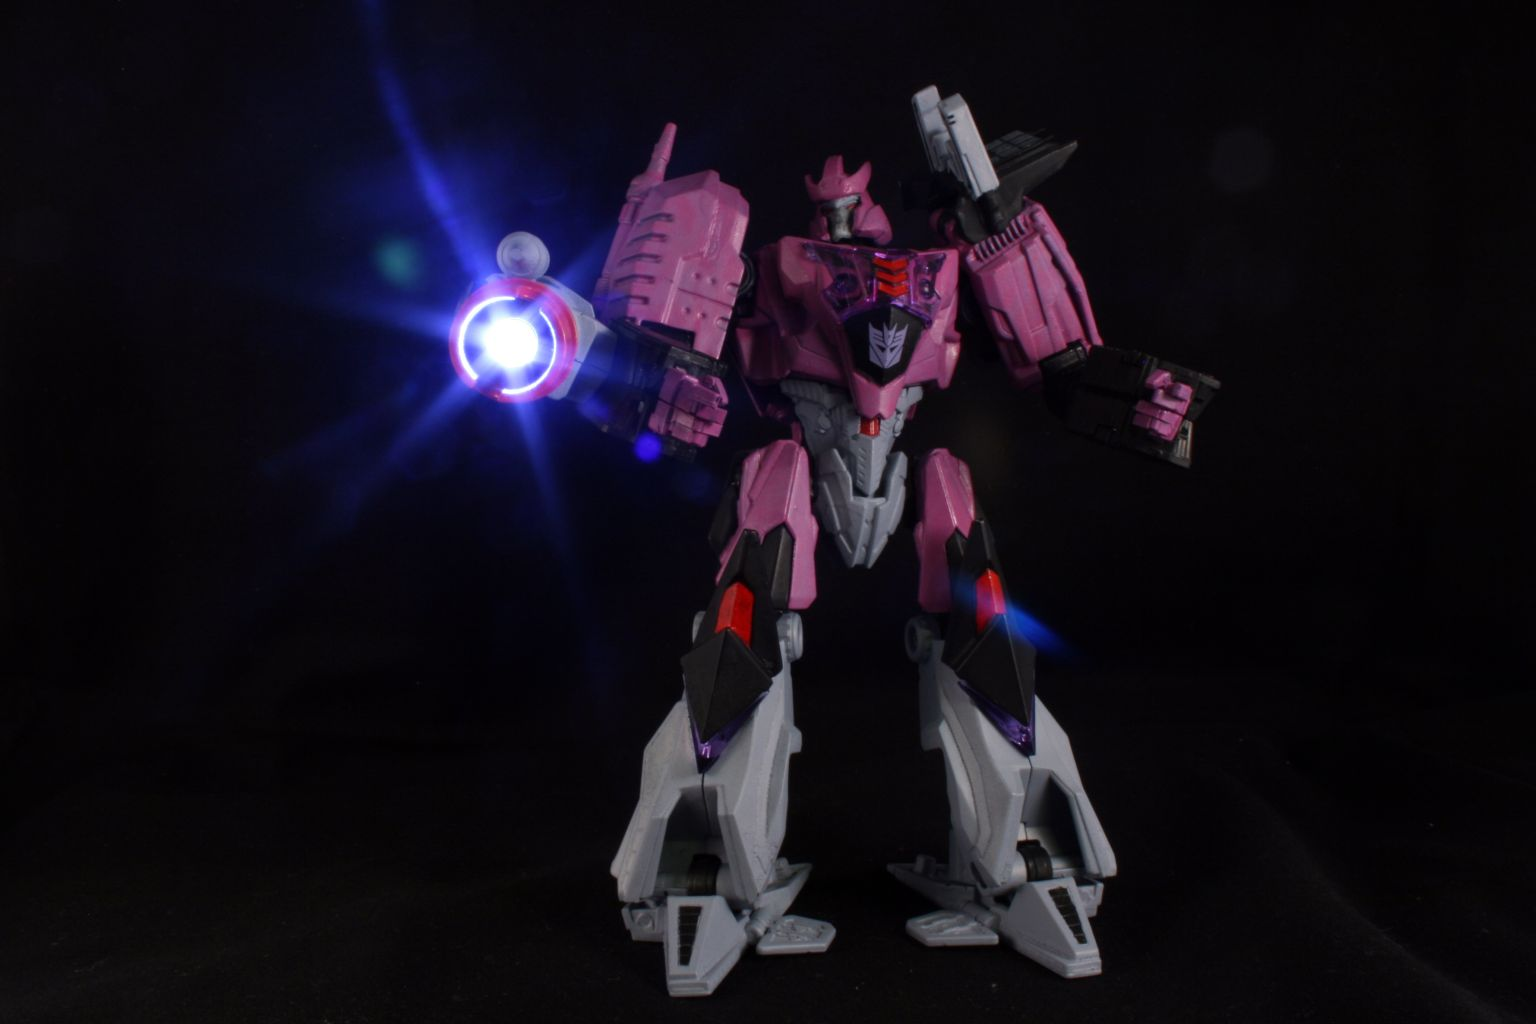 War for / Fall of Cybertron Galvatron